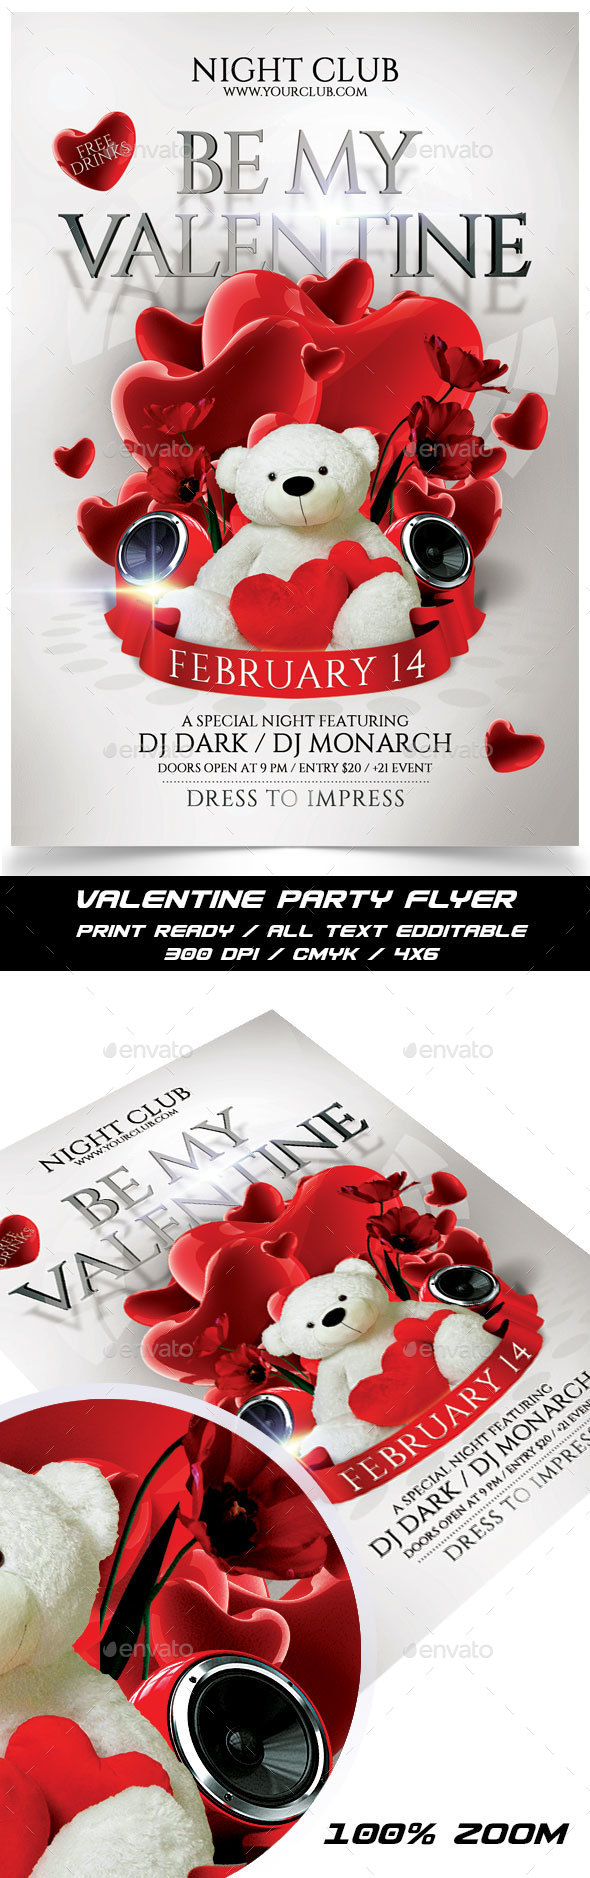 Be My Valentine Flyer - Events Flyers